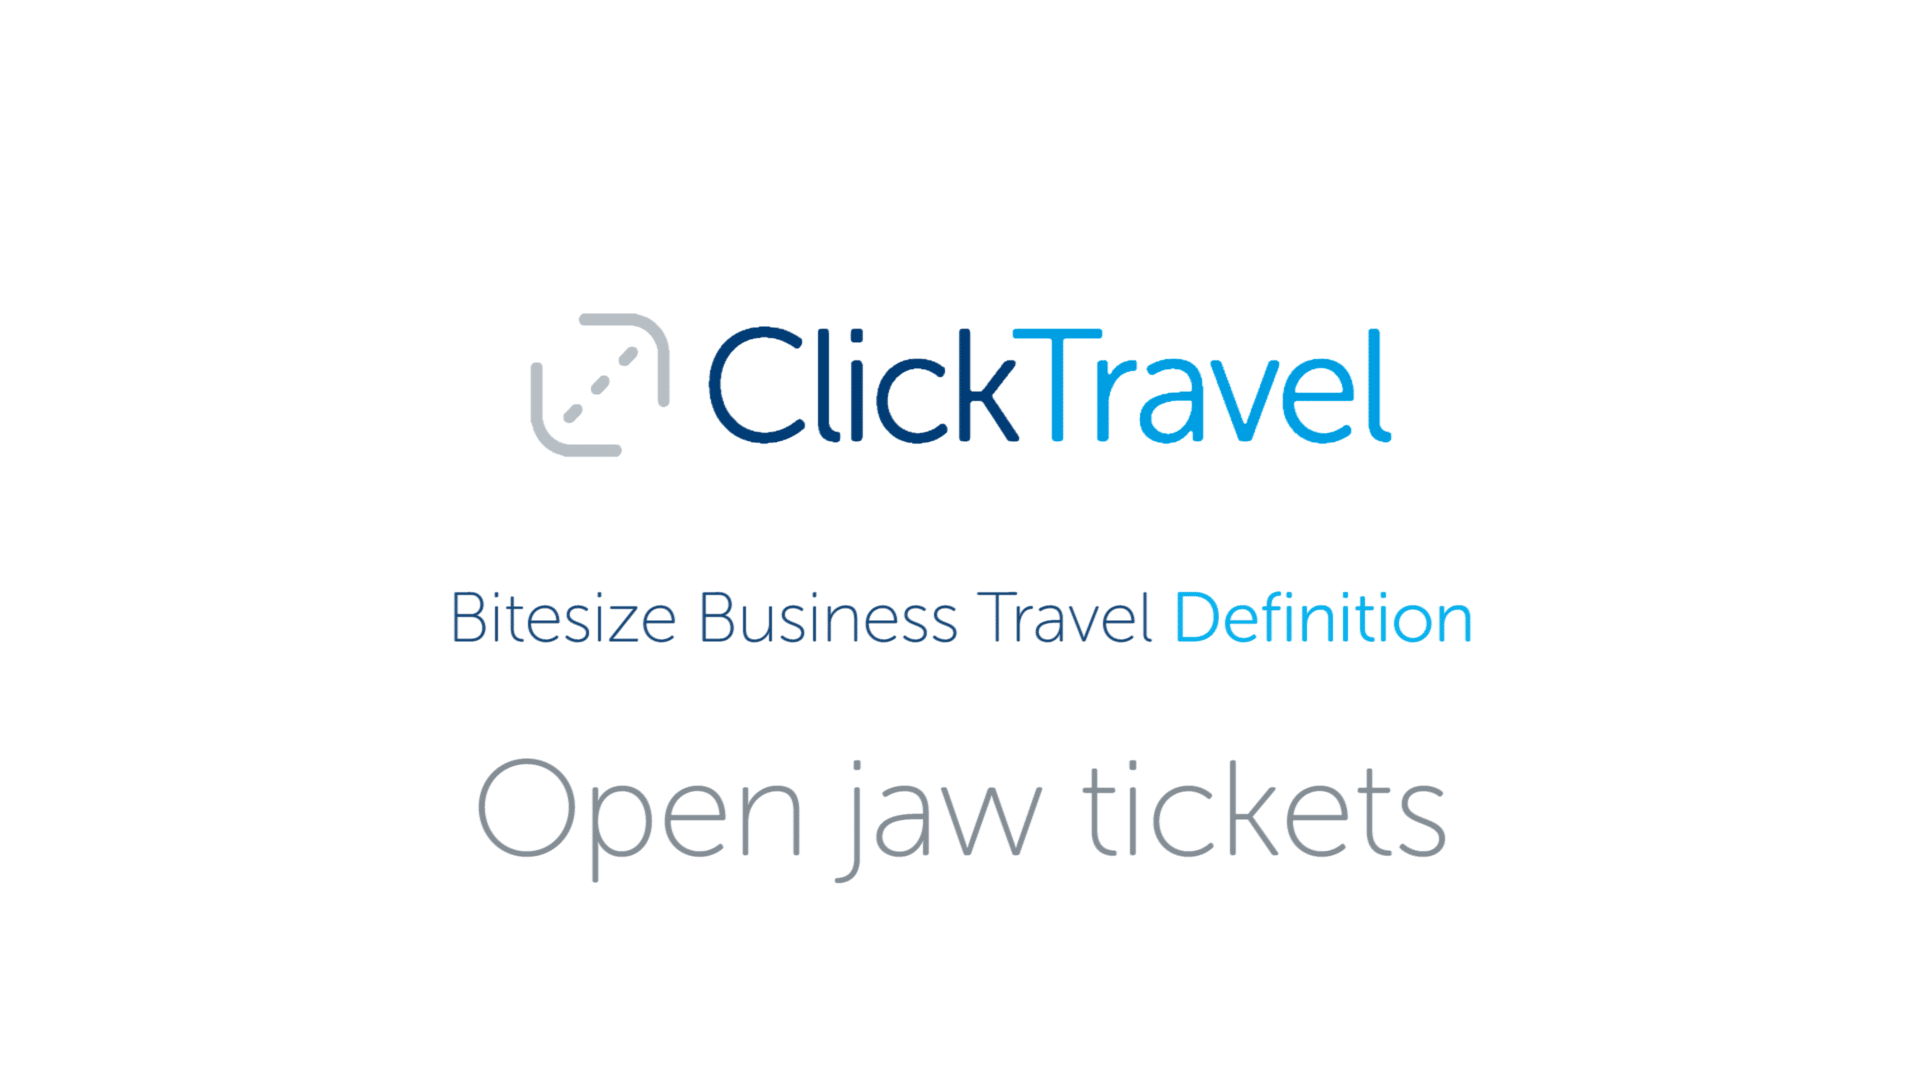 [VIDEO] Bitesize Business Travel Definition: Open jaw tickets